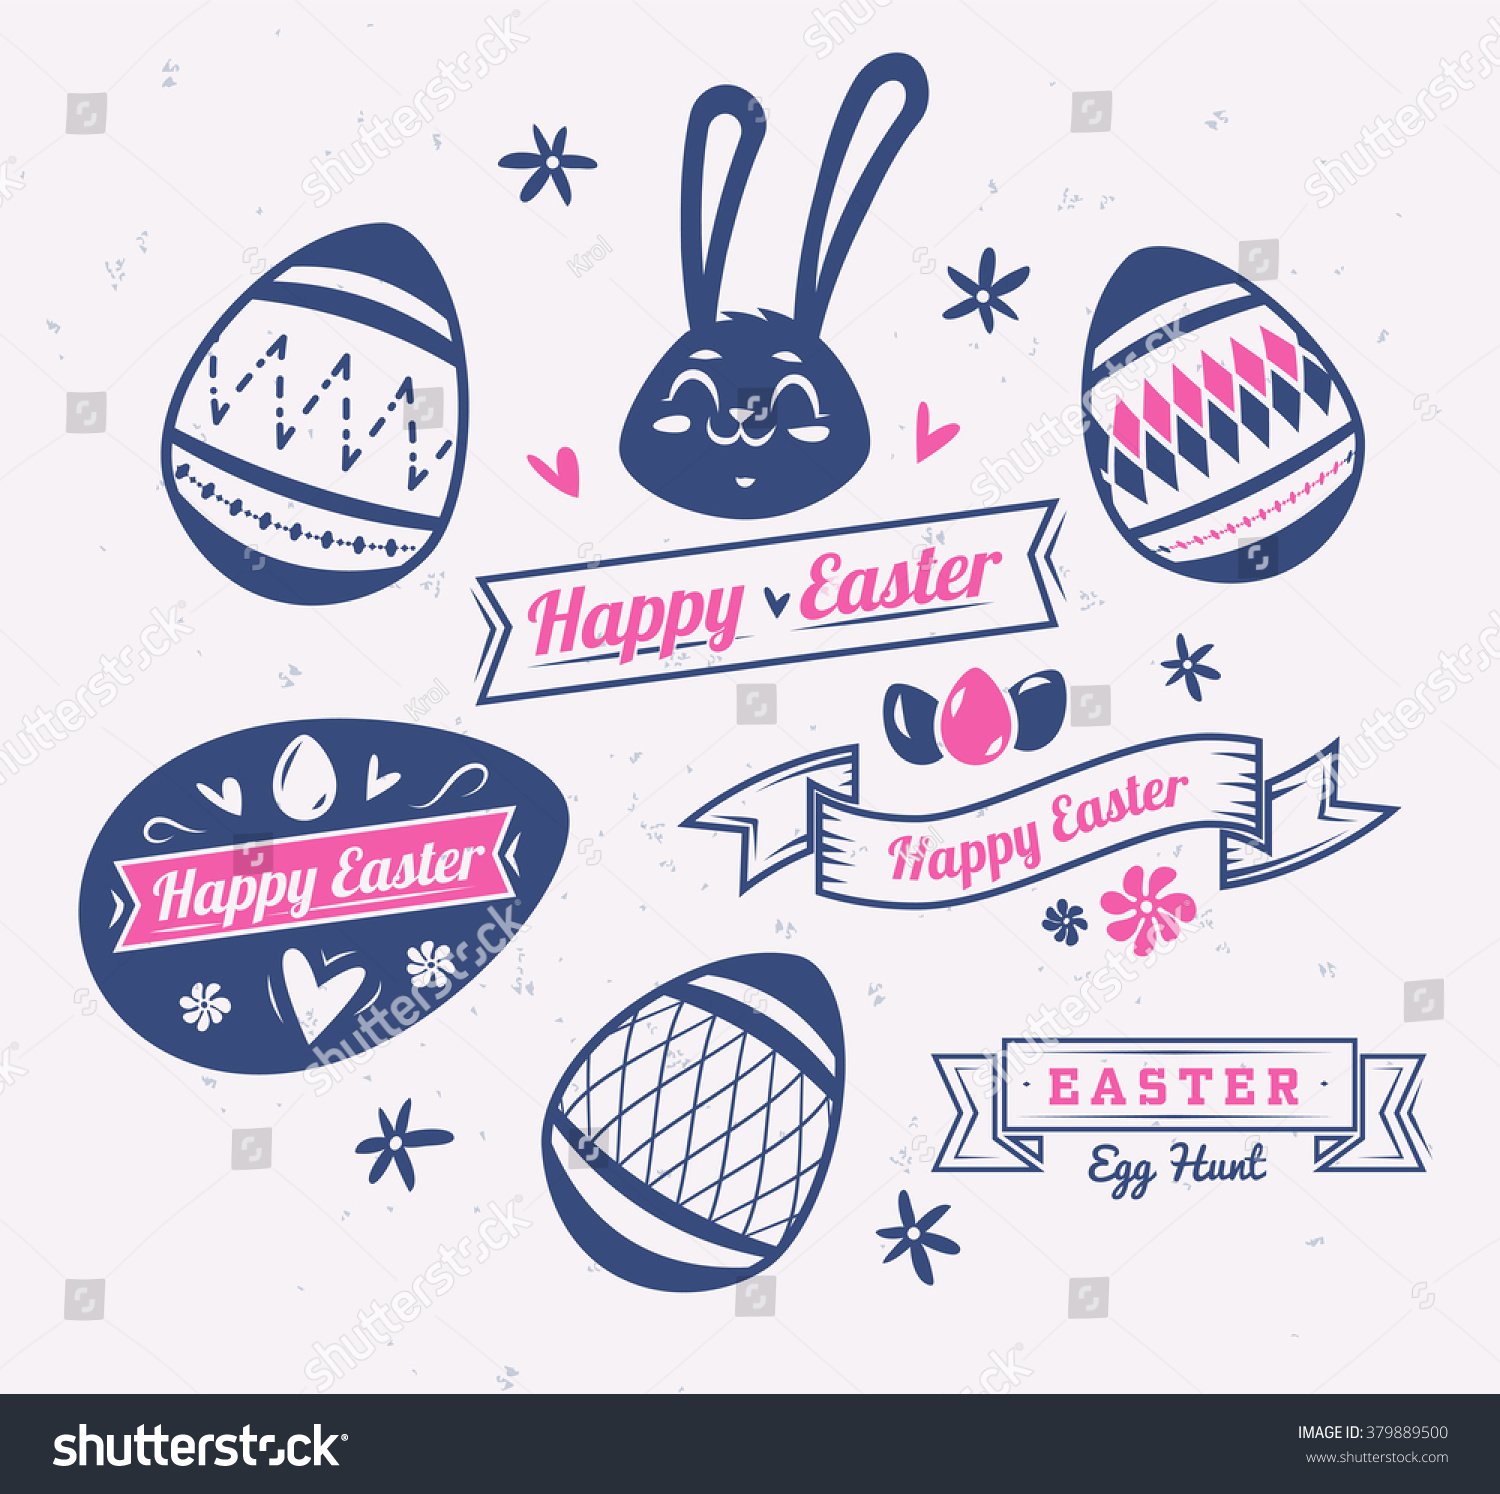 Happy easter greeting card bunny logos stock vector 379889500 happy easter greeting card with bunny logos labels and eggs vector cartoon illustration cute m4hsunfo